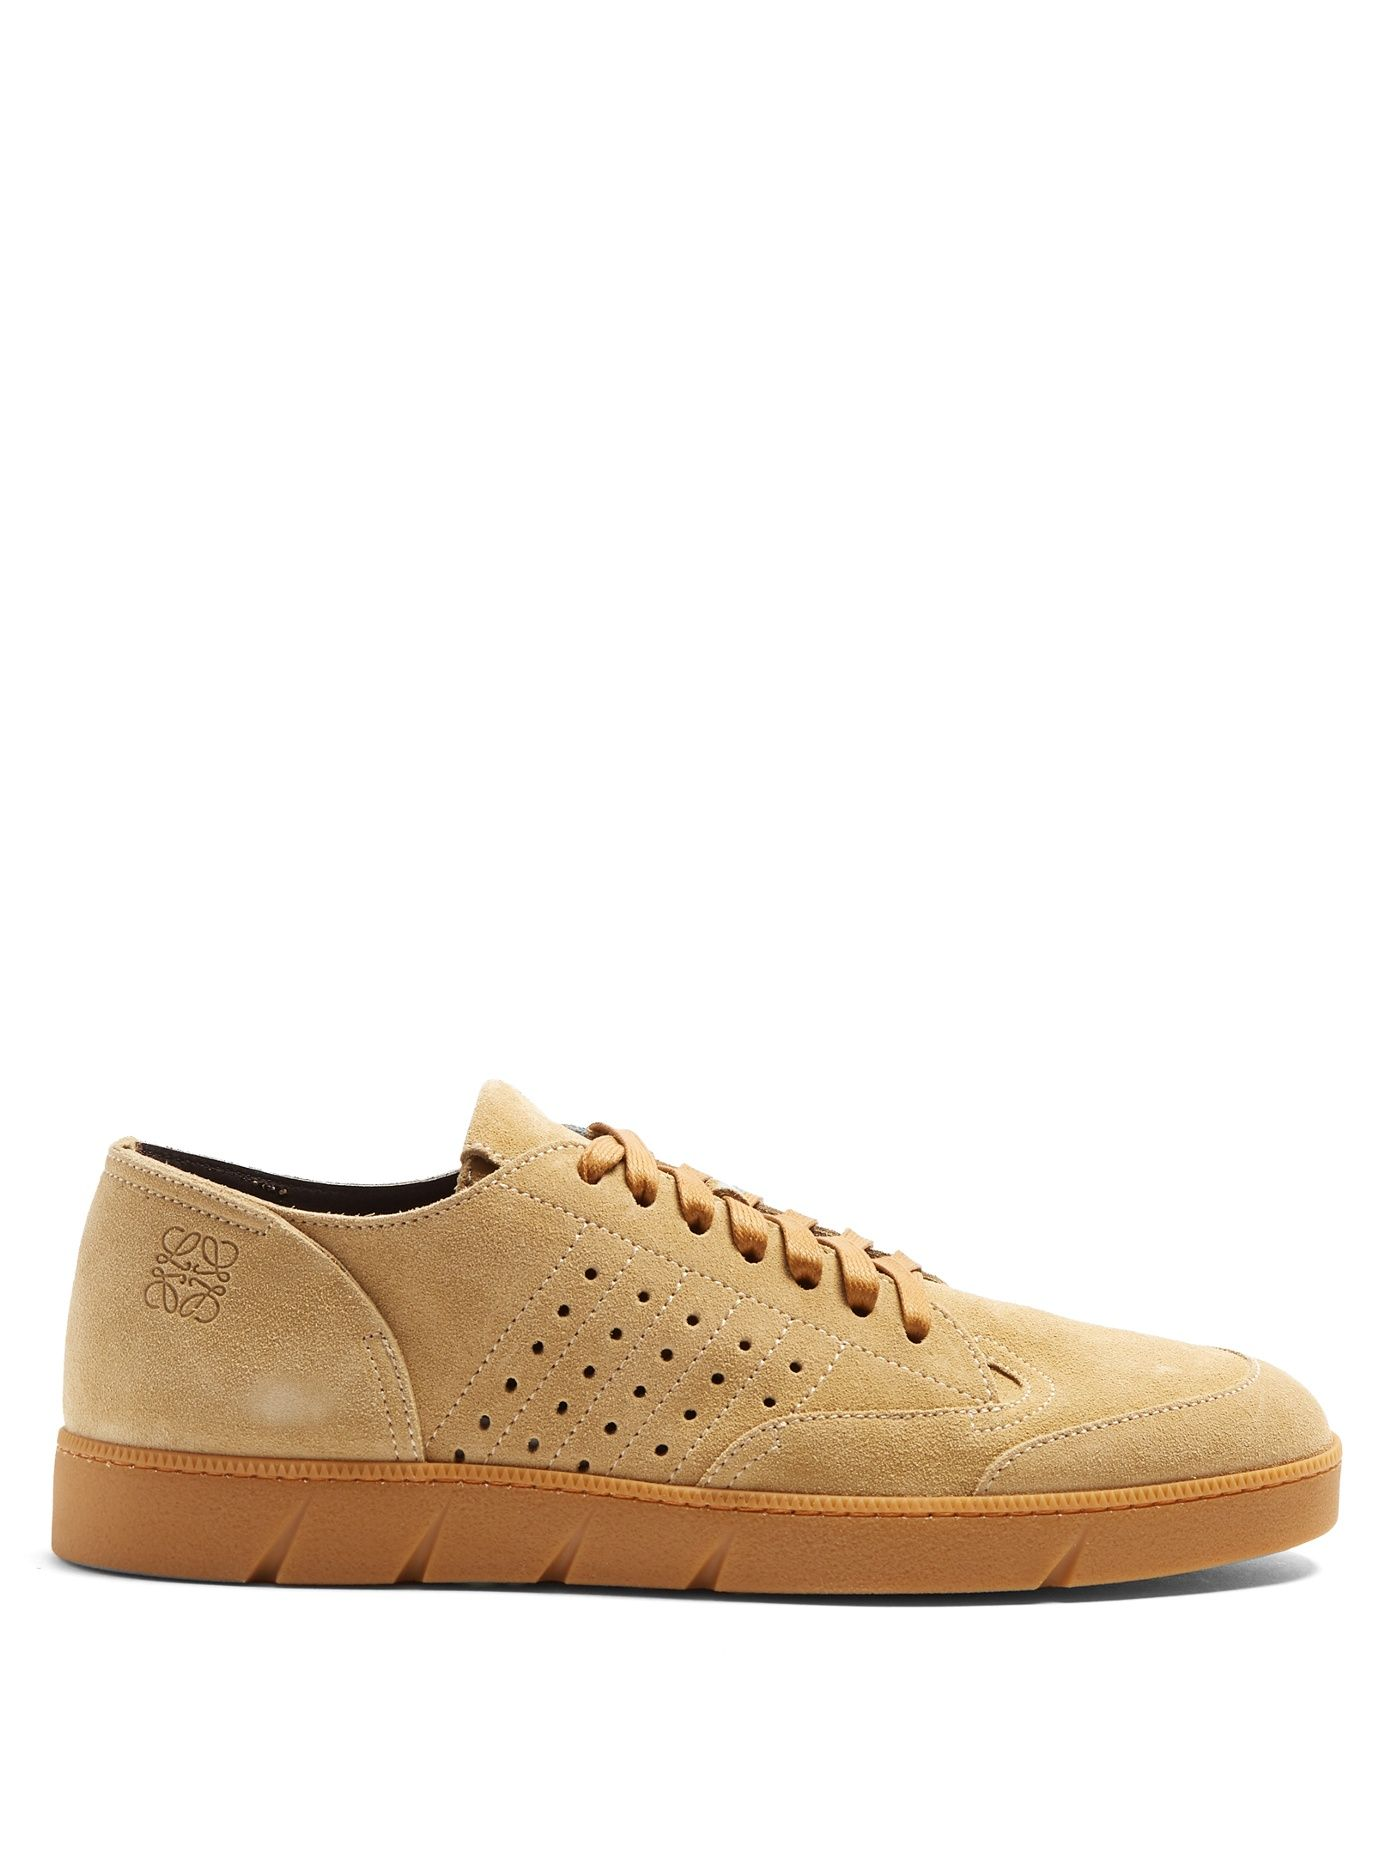 Low-top suede trainers | Loewe | MATCHESFASHION.COM UK